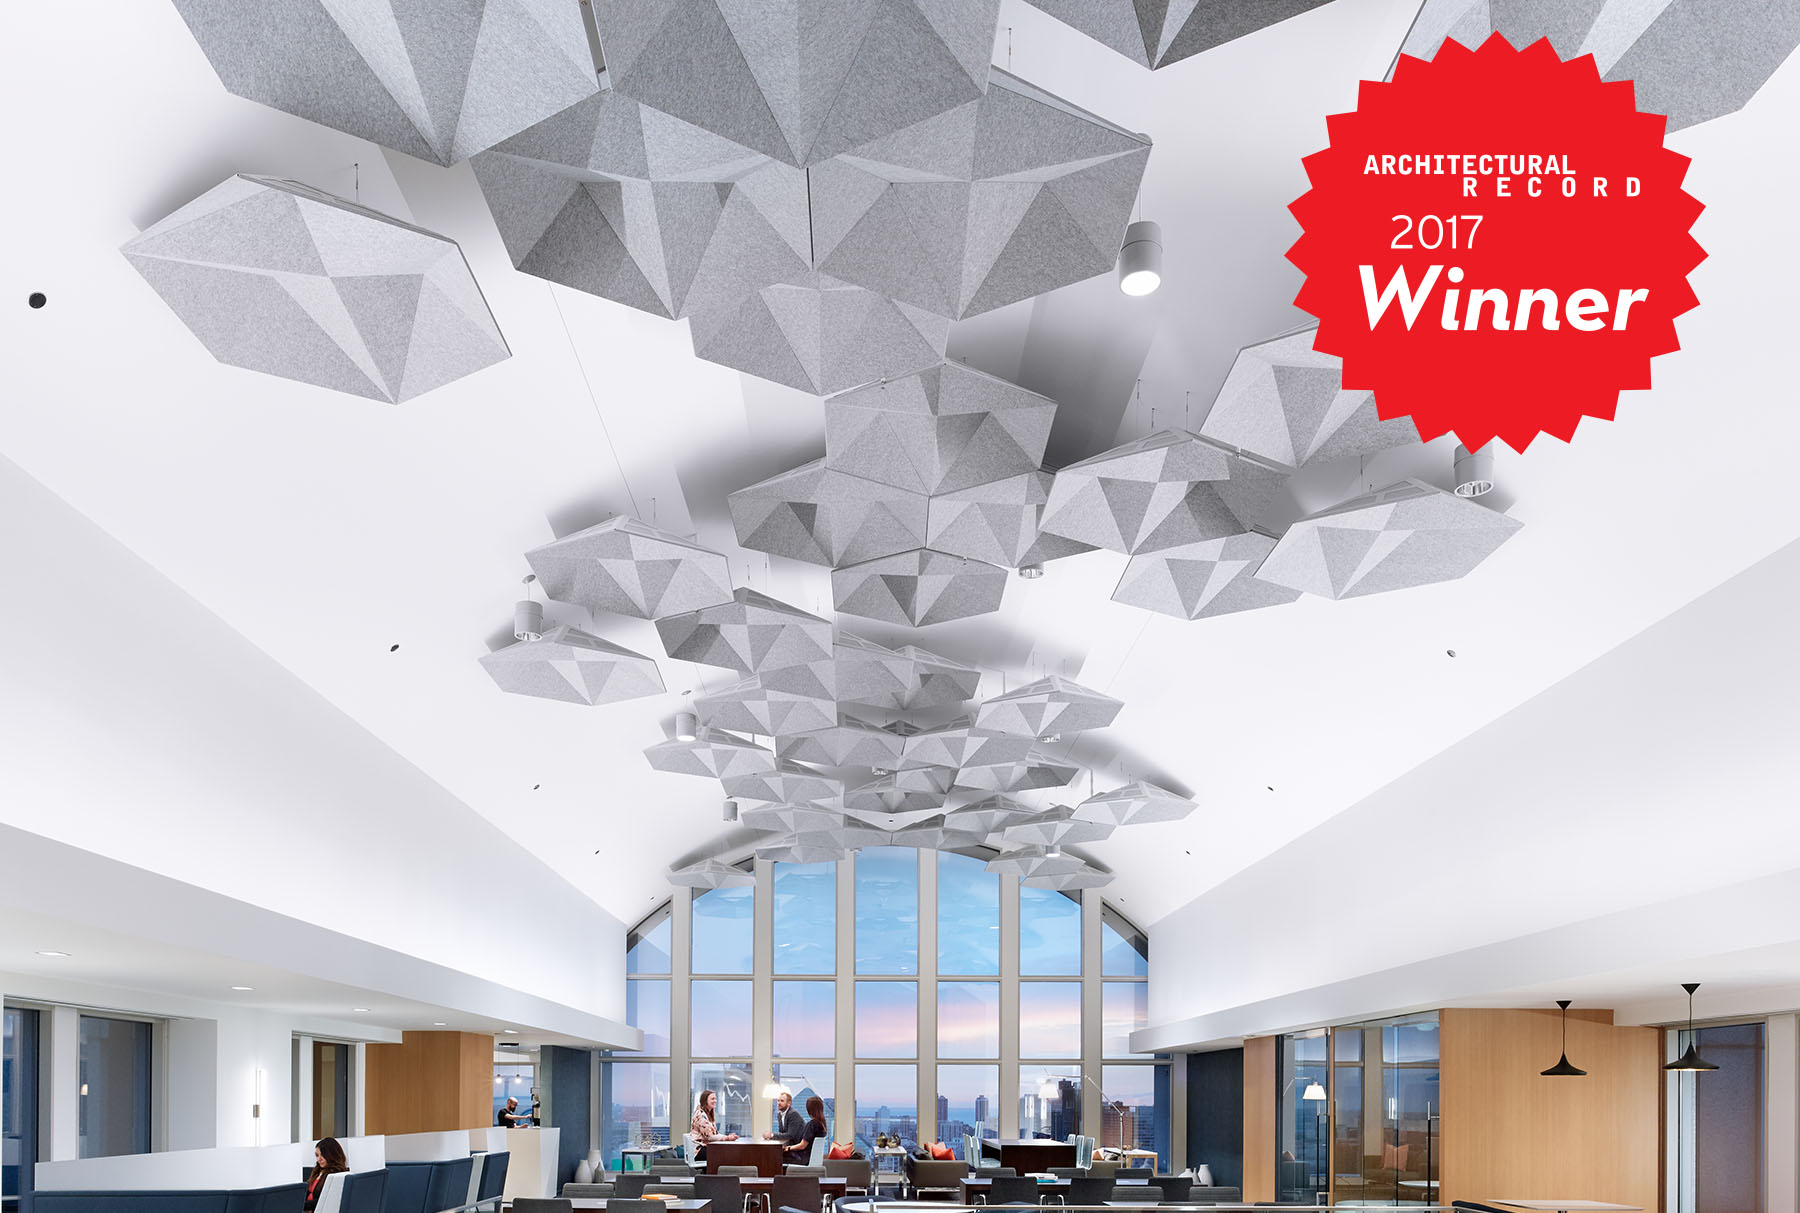 SoundStar® faceted, acoustical system is the 2017 Architectural Record winner